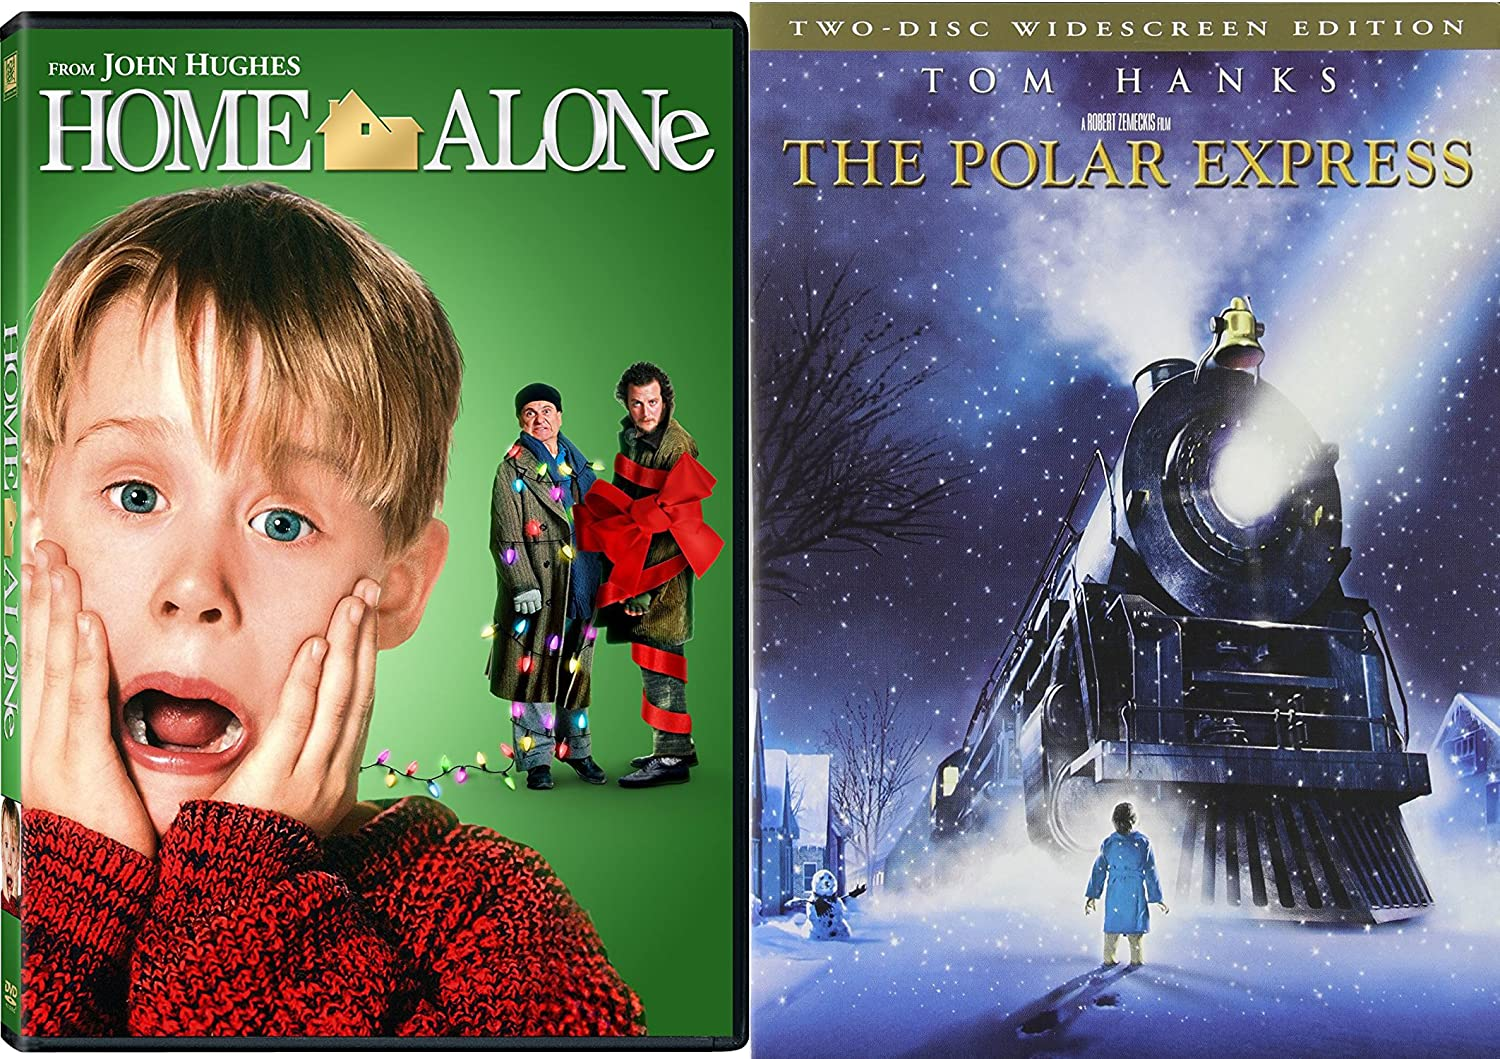 Family Holiday Classics Bundle - The Polar Express (Two-Disc Widescreen Edition) & Home Alone 2-DVD Bundle